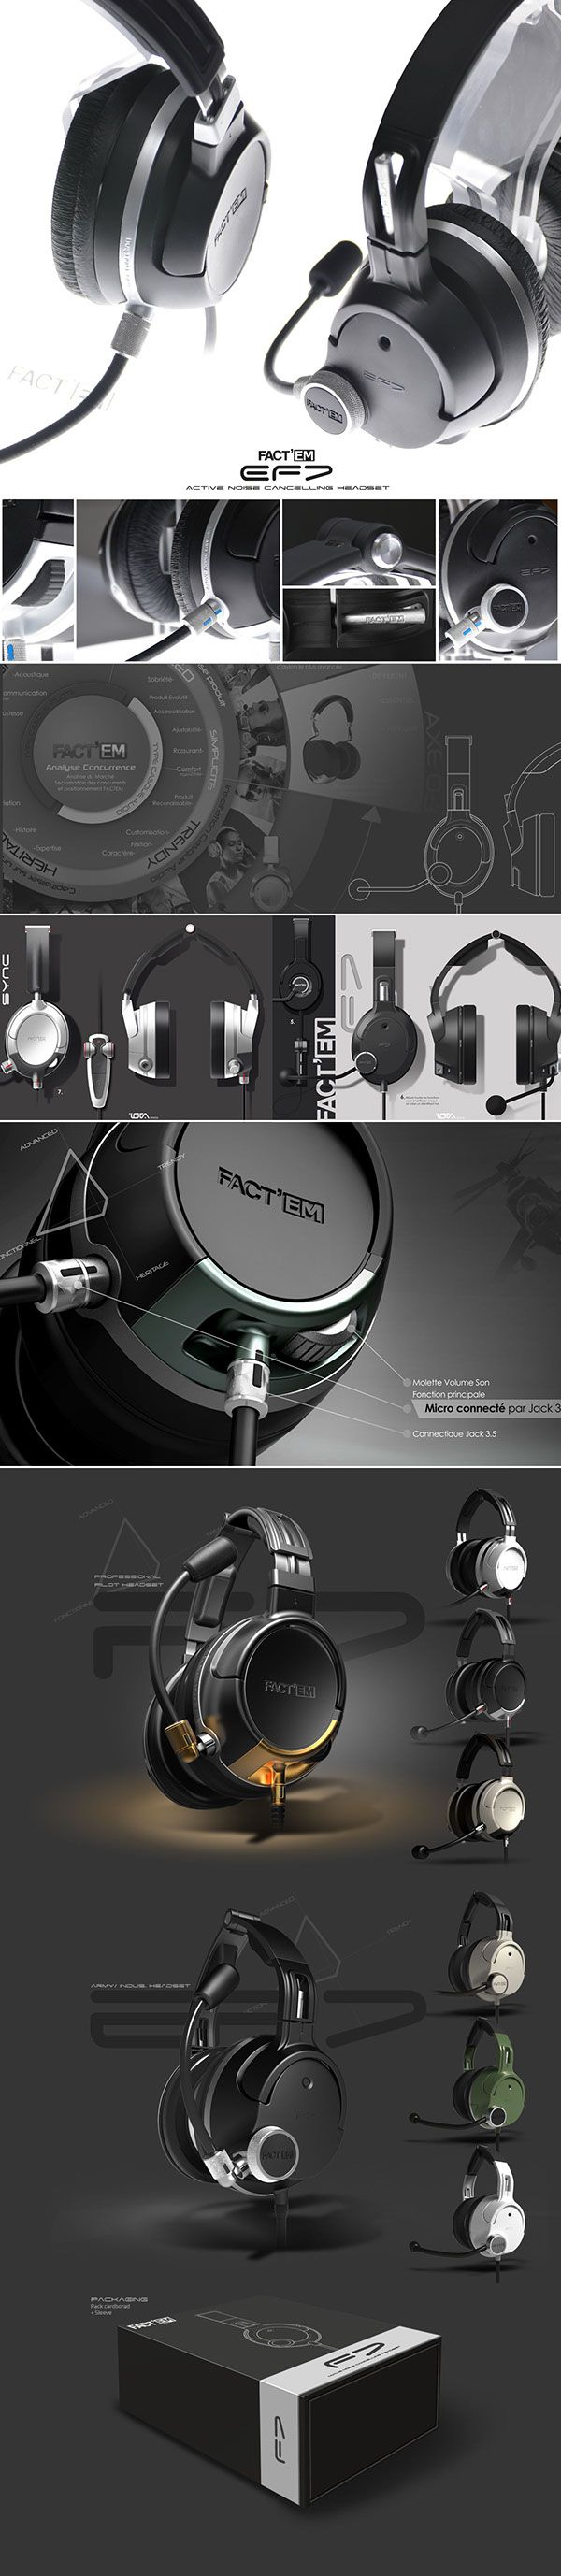 New headset design, for Factem, french audio military products manufacturer.